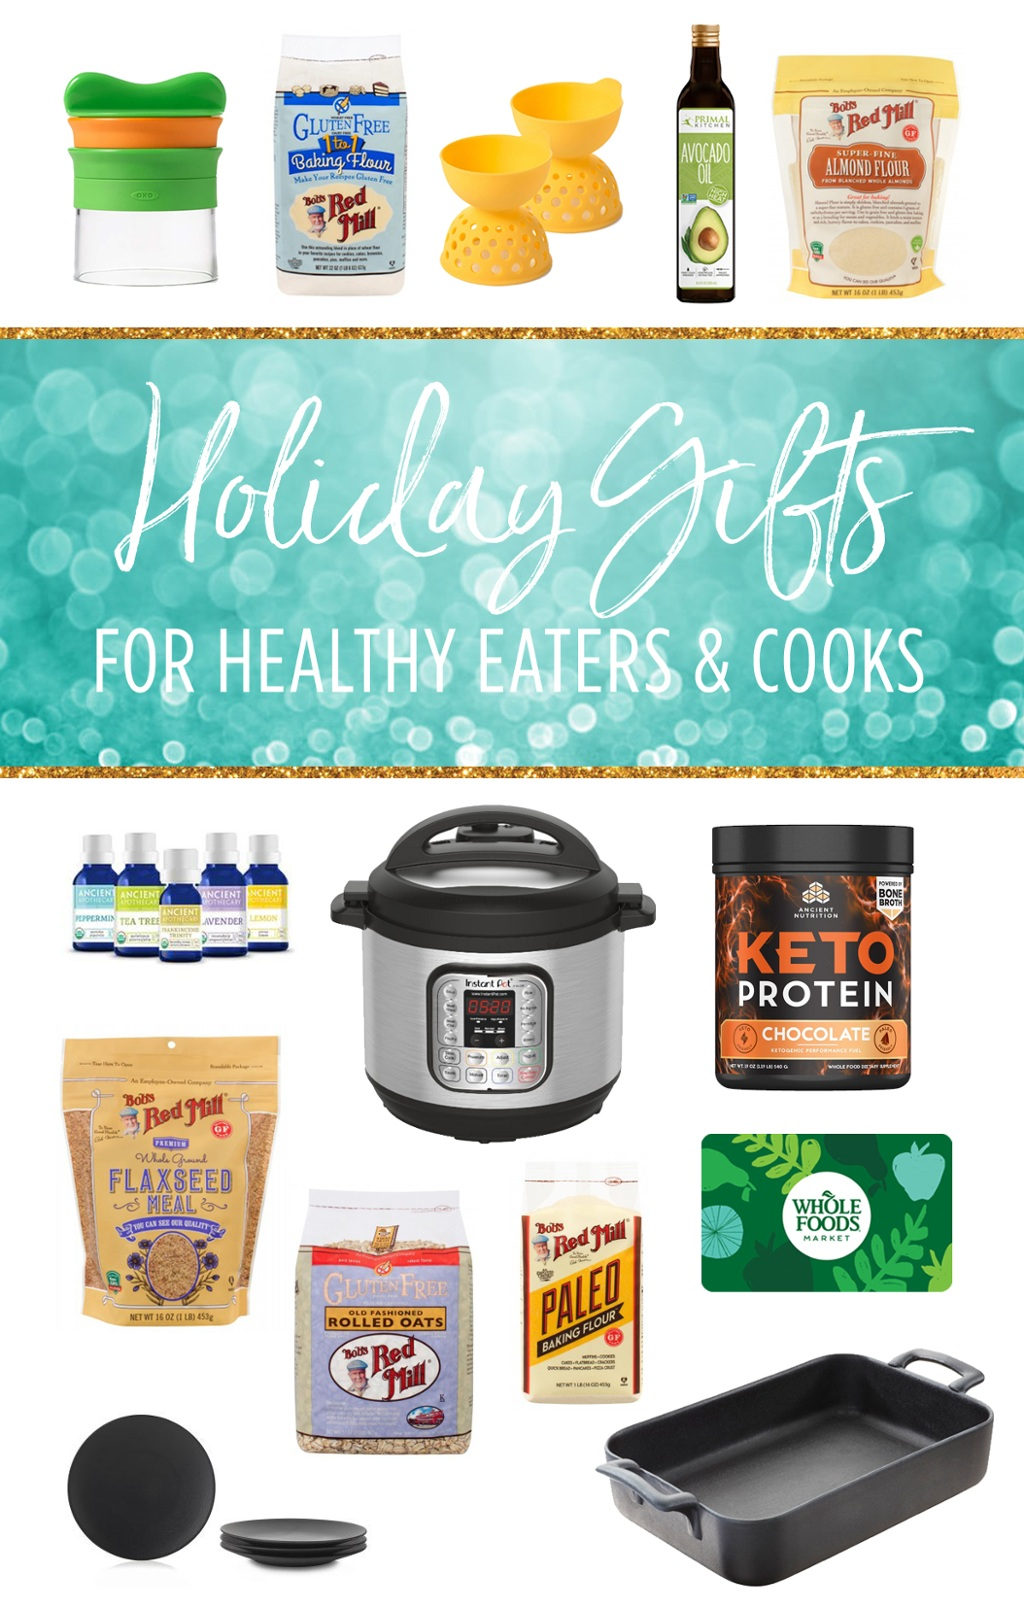 Holiday Gift Guide for healthy eaters, cooks, and foodies! Paleo friendly products, must have kitchen appliances, & porcelain dishes for entertaining! Bobs Redmill Paleo and gluten free baking products